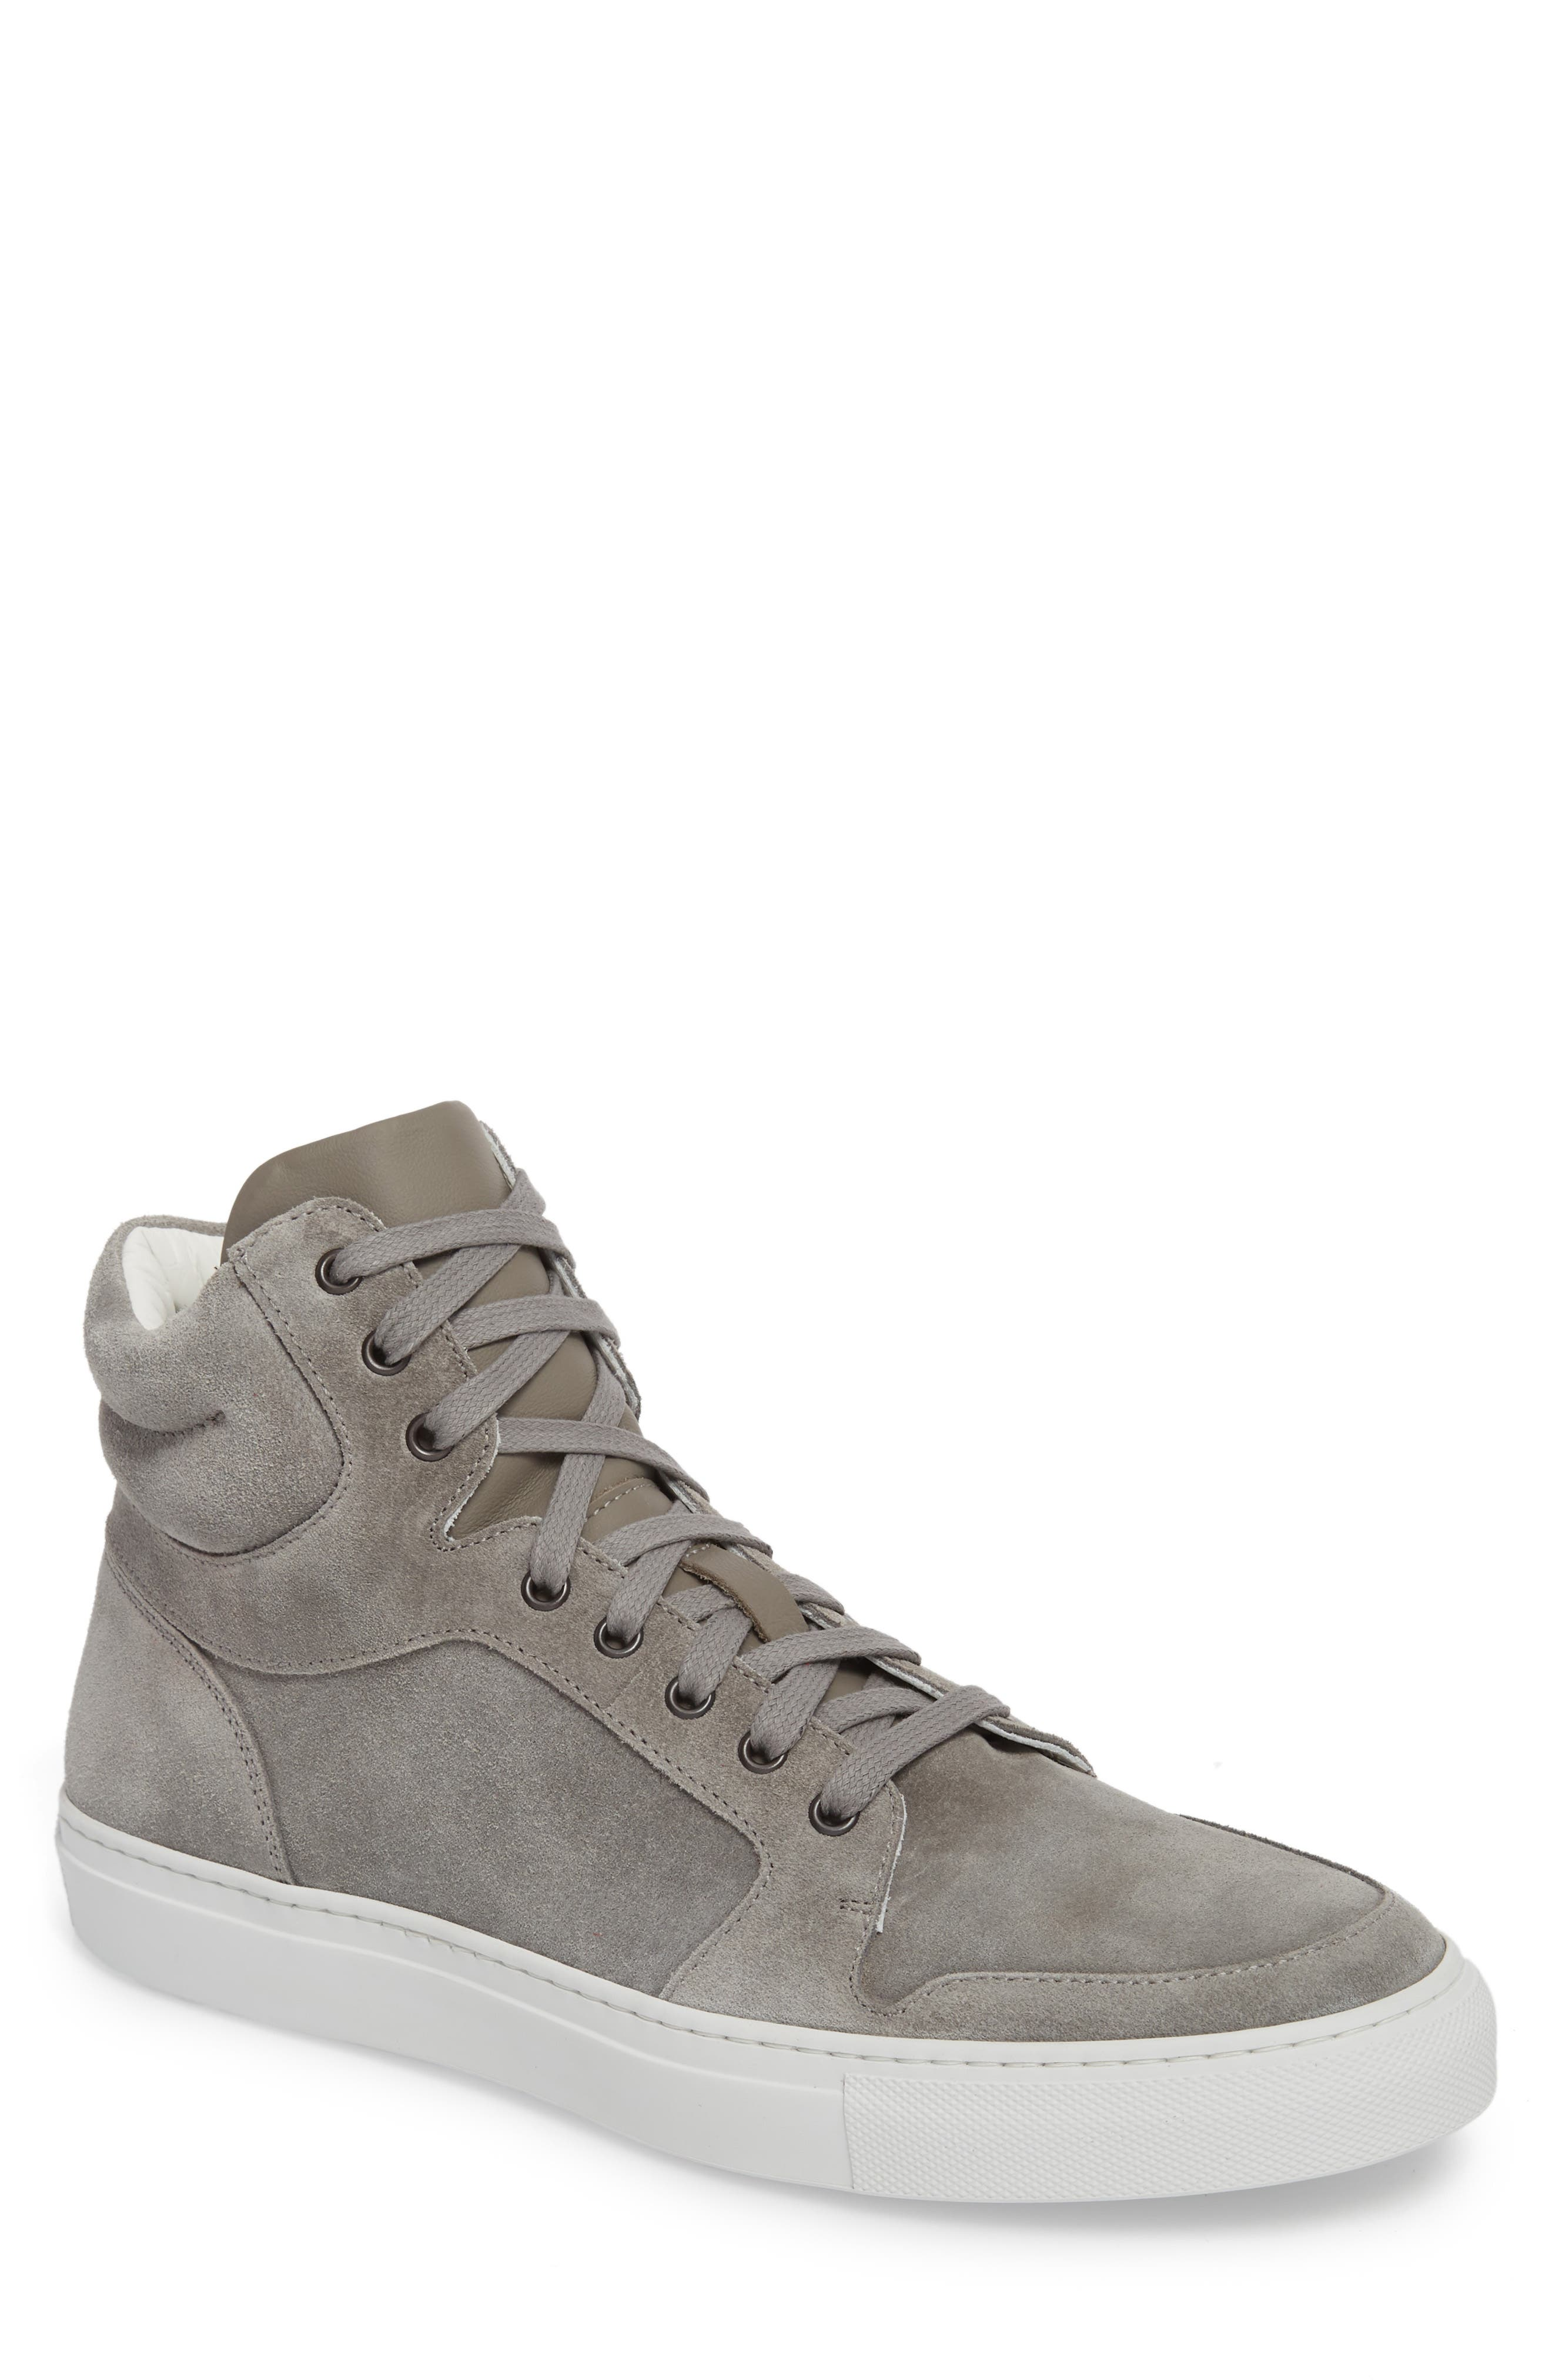 Belmont High Top Sneaker,                             Main thumbnail 1, color,                             034